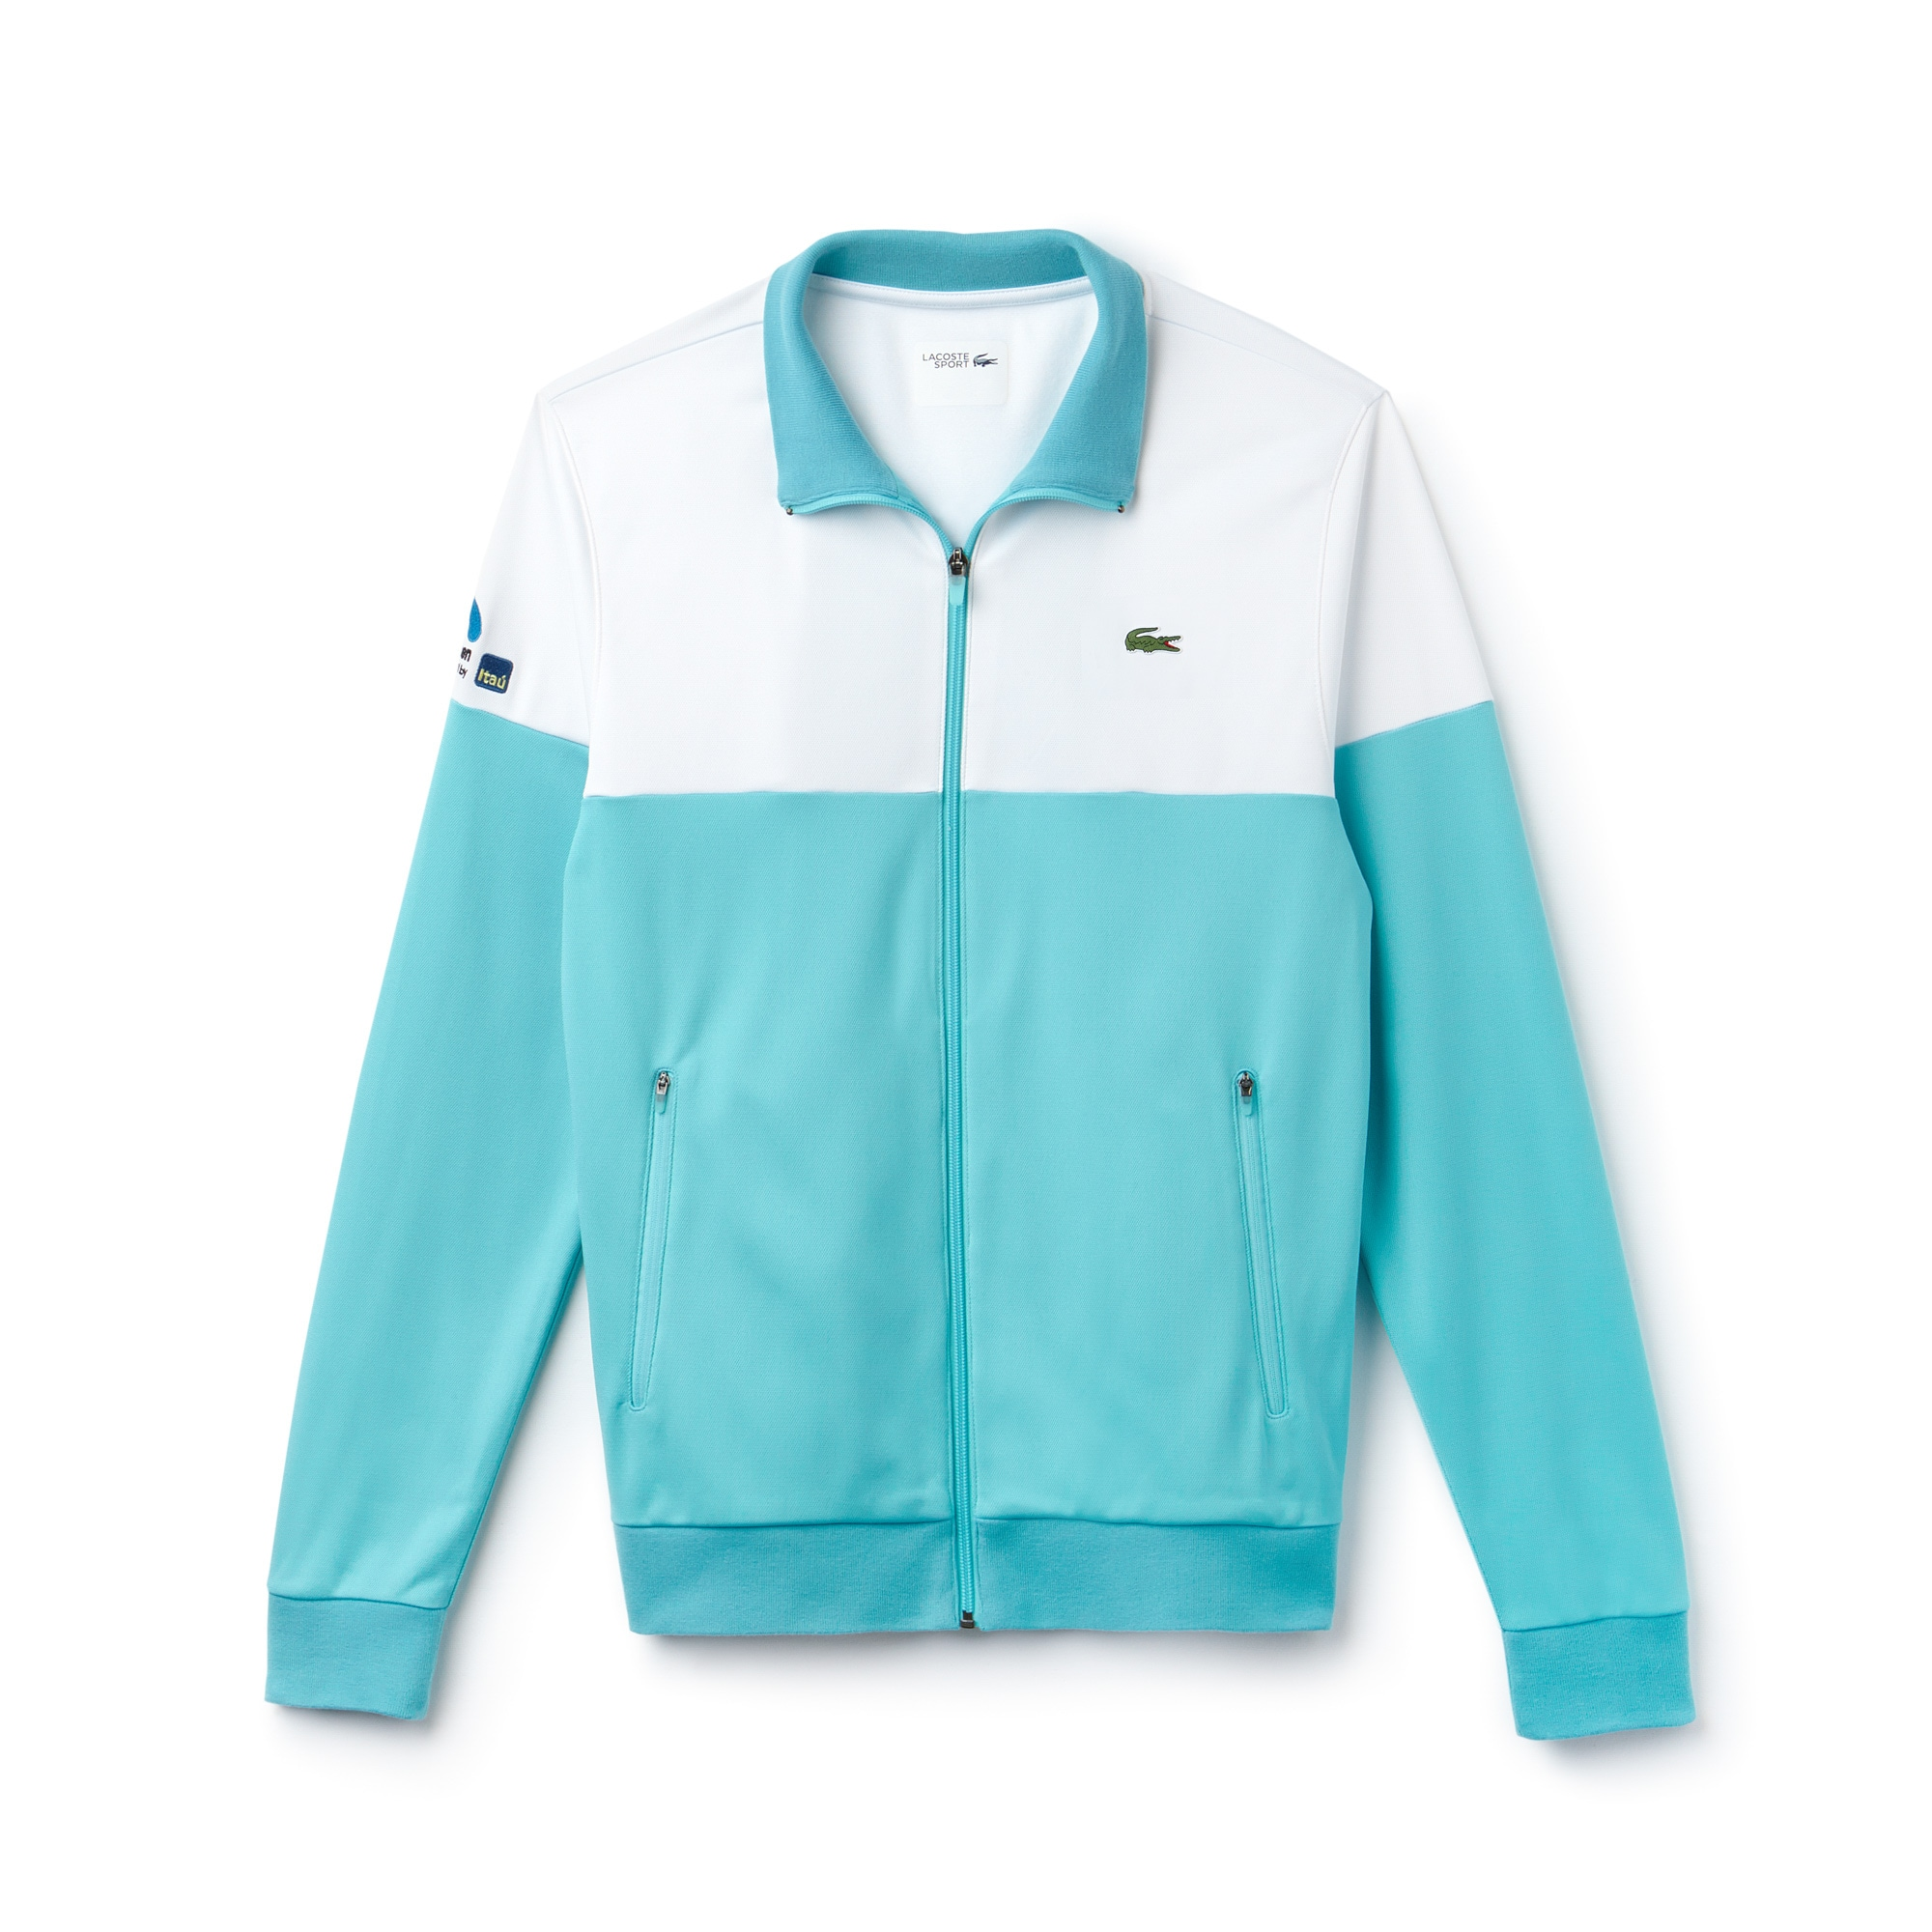 Men's SPORT Miami Open Colorblock Zip Tech Piqué Tennis Sweatshirt